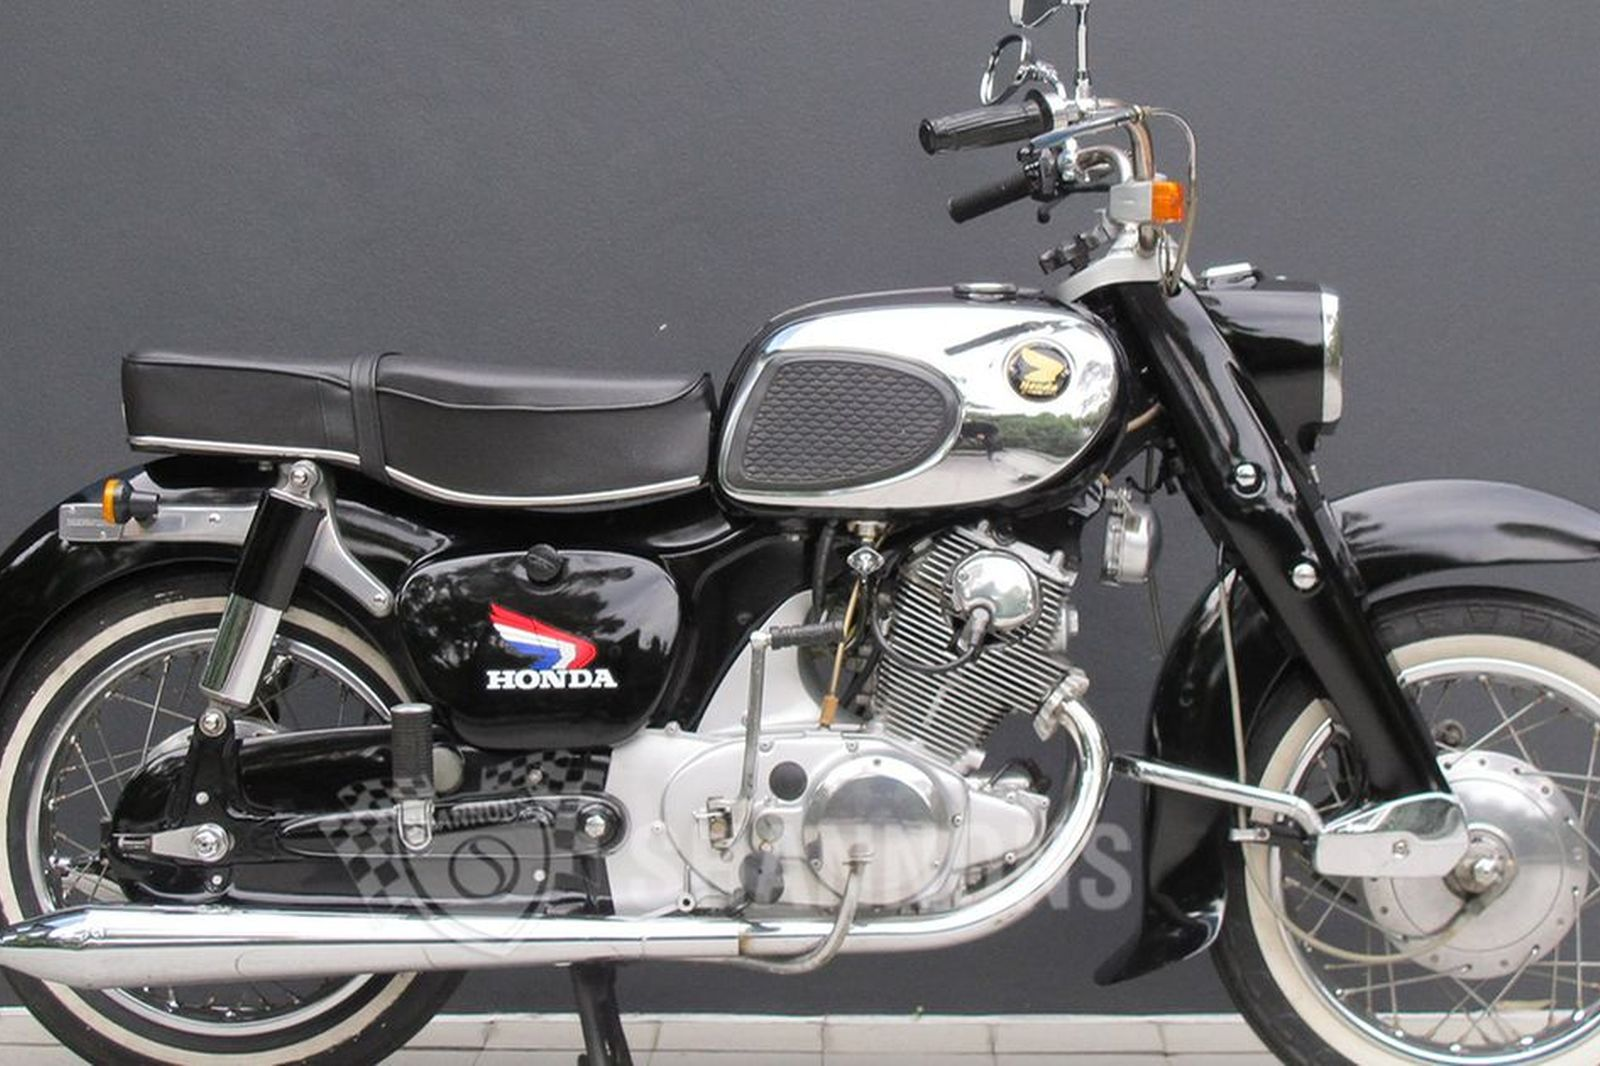 Honda Dream 305cc Motorcycle